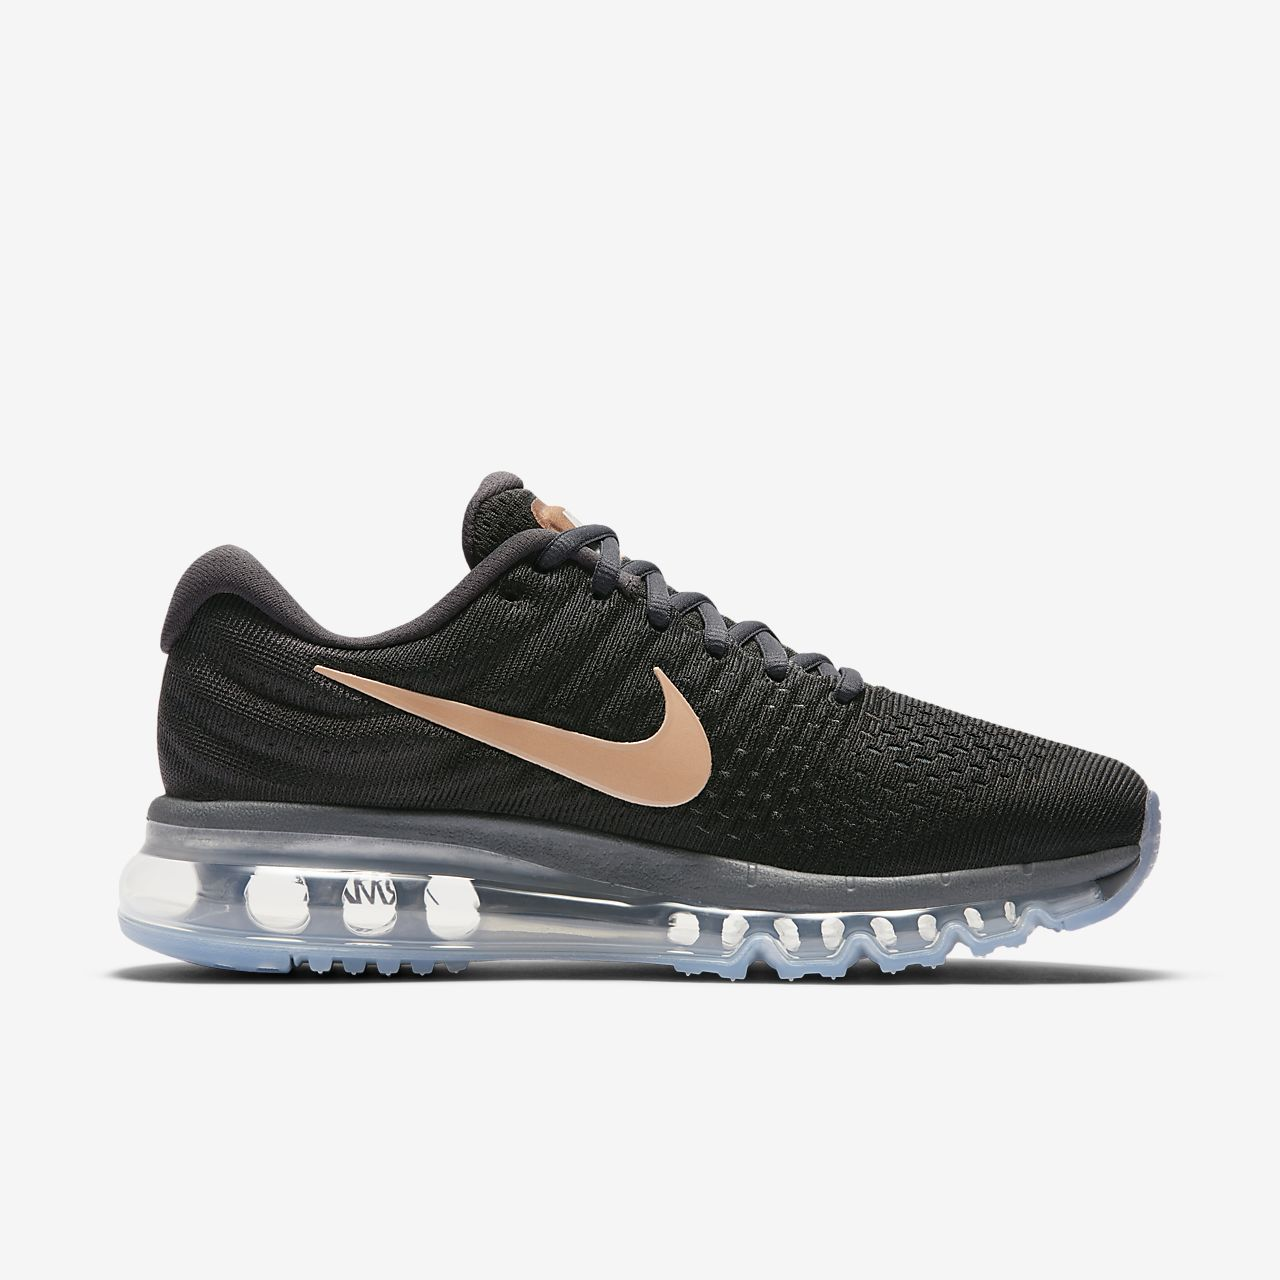 nike air max 2017 dames maat 36